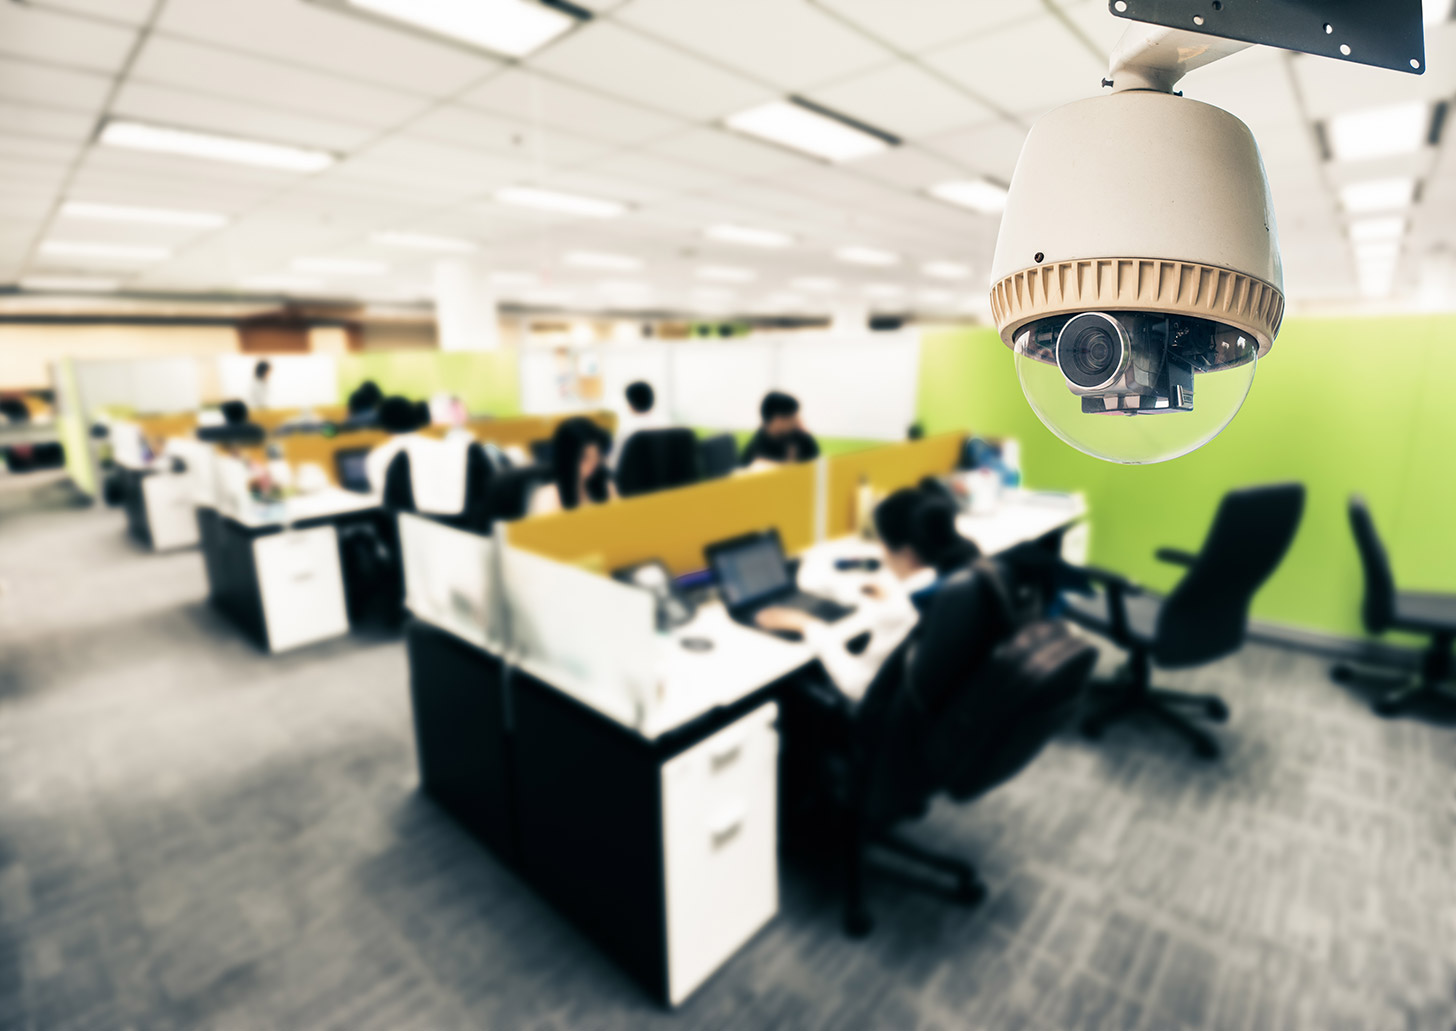 Can your employer spy on you? Image of a security camera in an office | Crunch